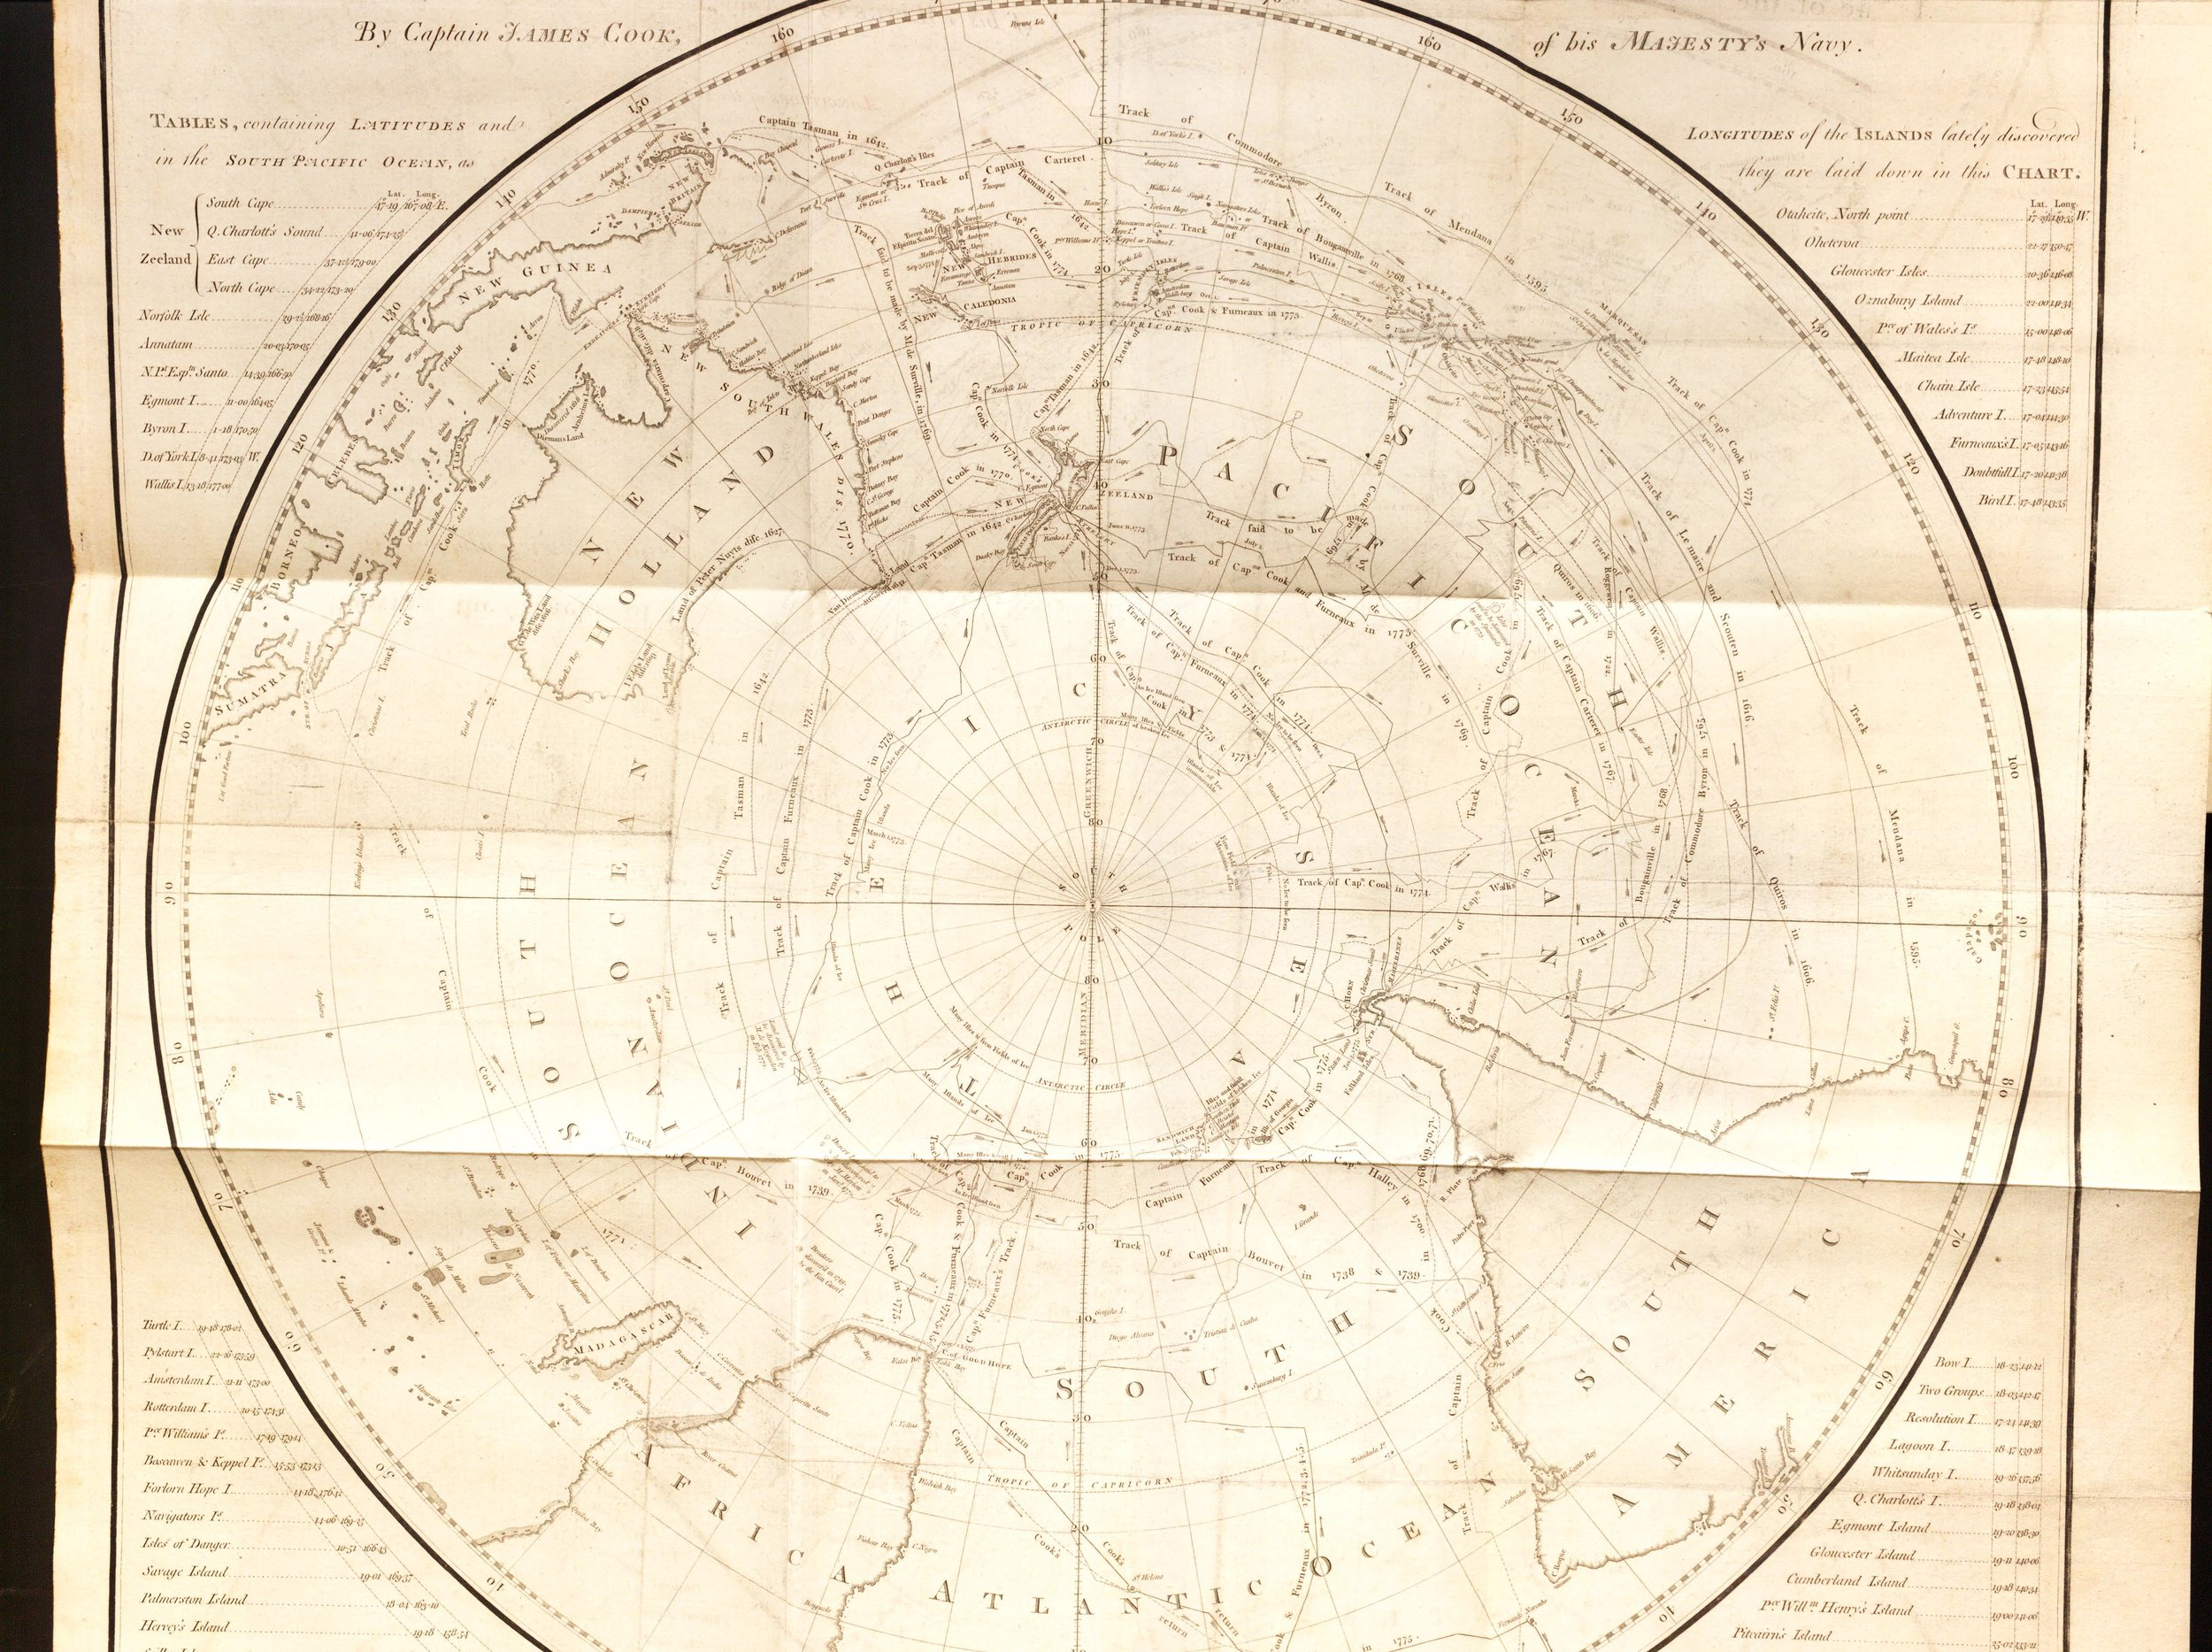 Cook's chart of the Southern Hemisphere, sans Antarctica because Cook never reached it. Aside from the missing continent, the map is quite accurate.